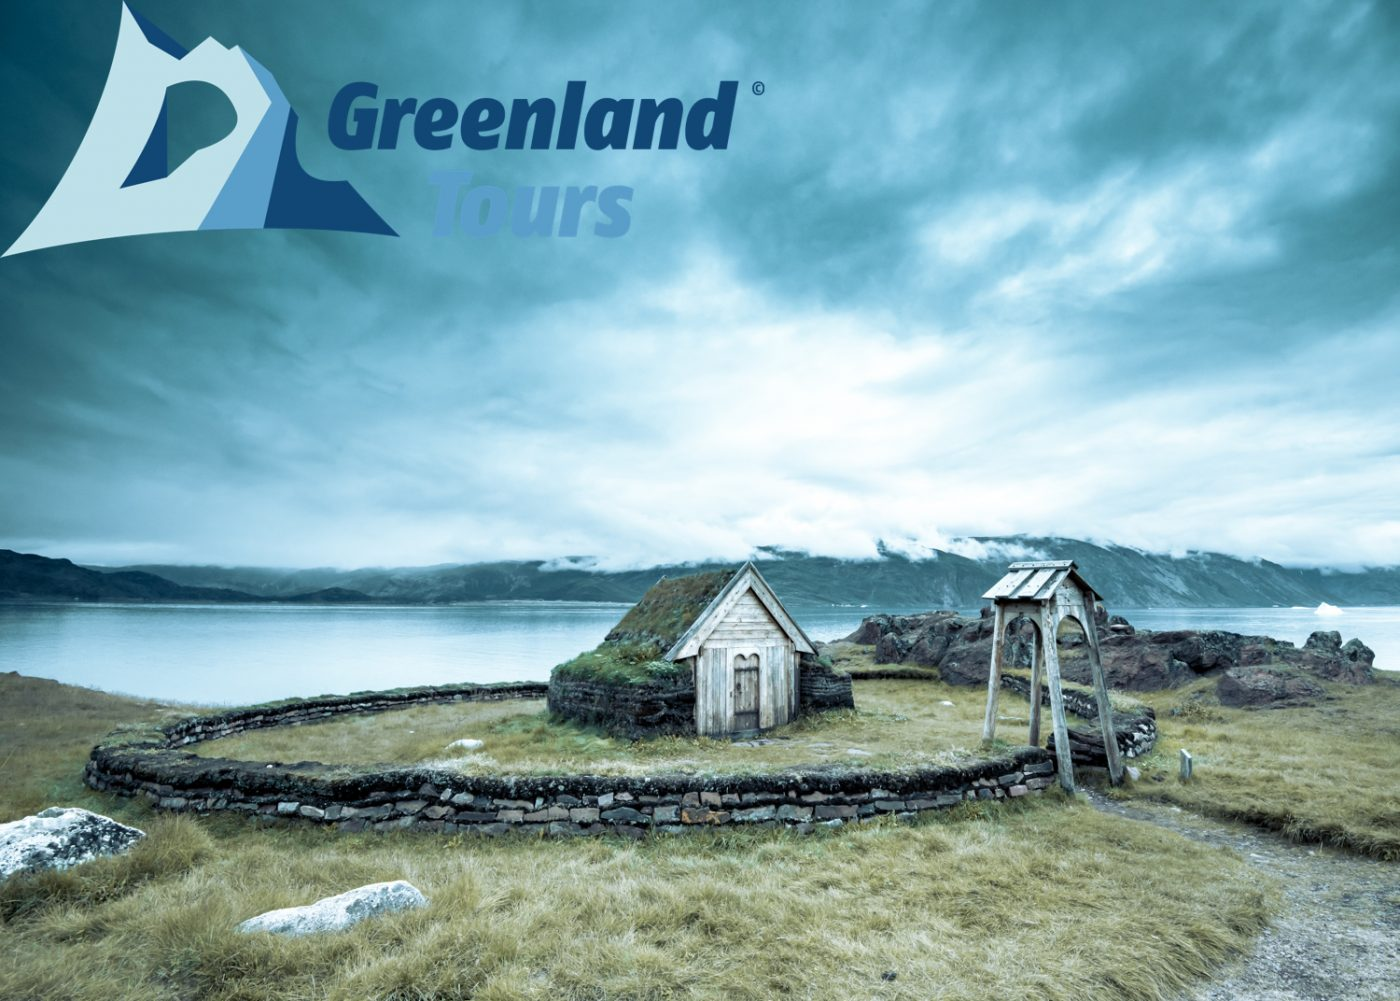 Greenland Tours: Fjords and Vikings